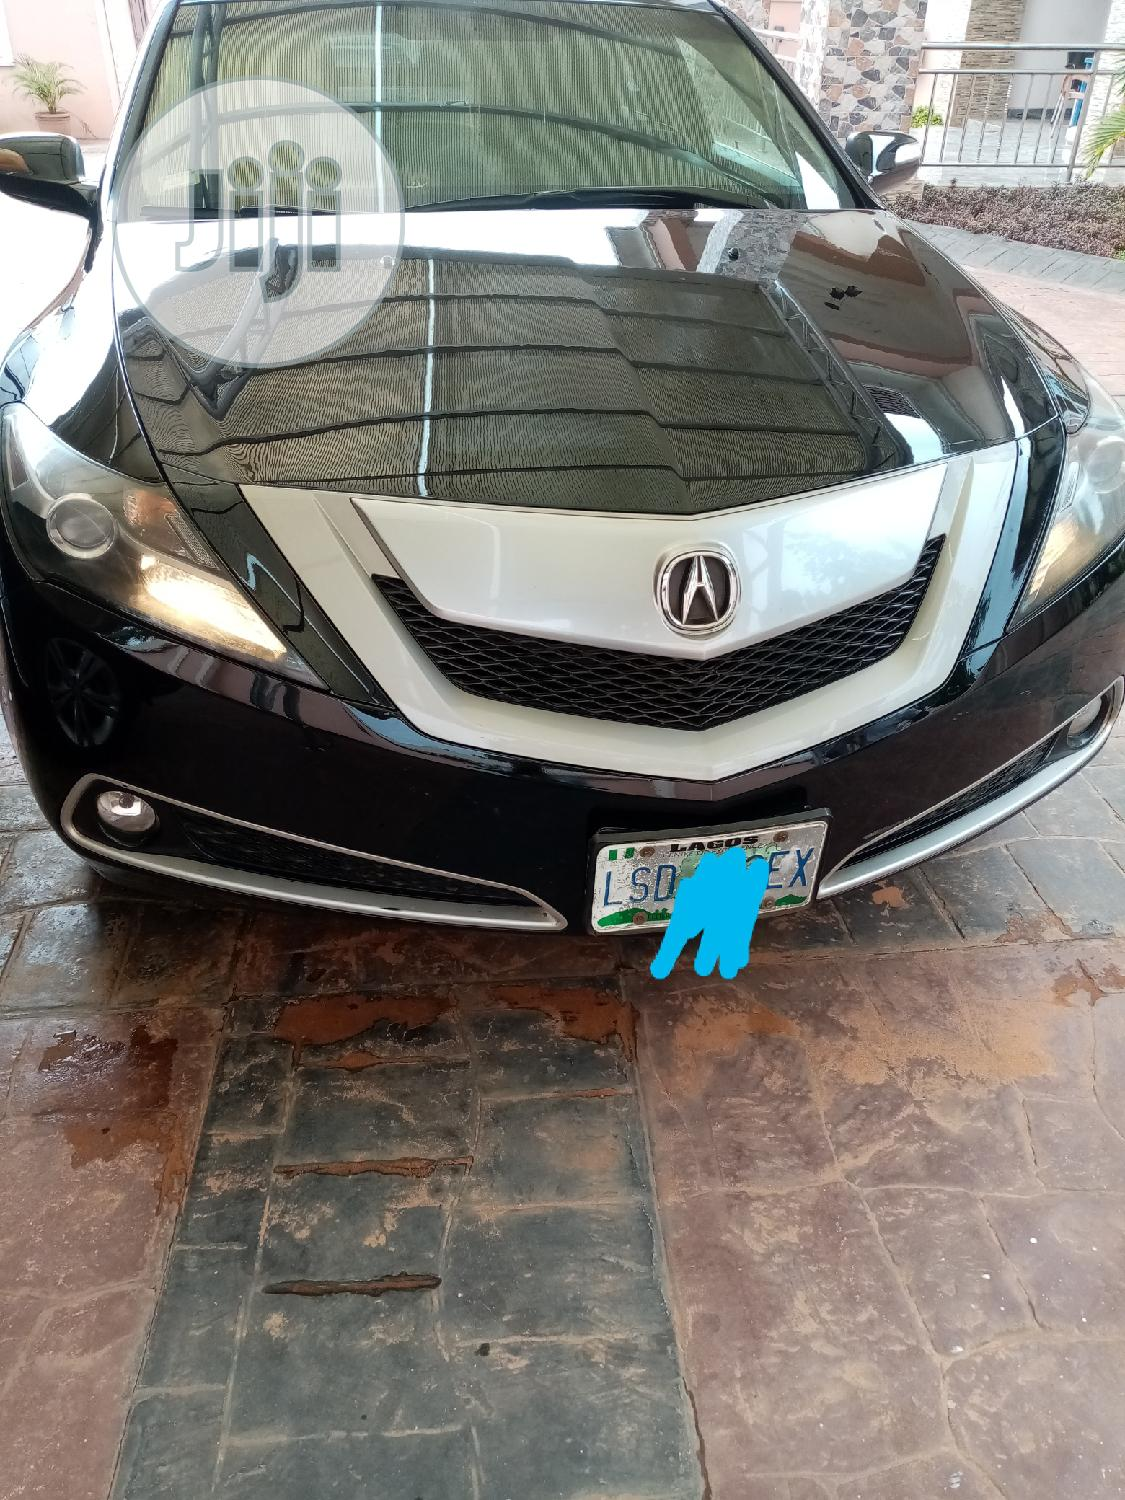 Archive Acura Zdx 2011 Black In Oshimili South Cars Kk Properties Jiji Ng